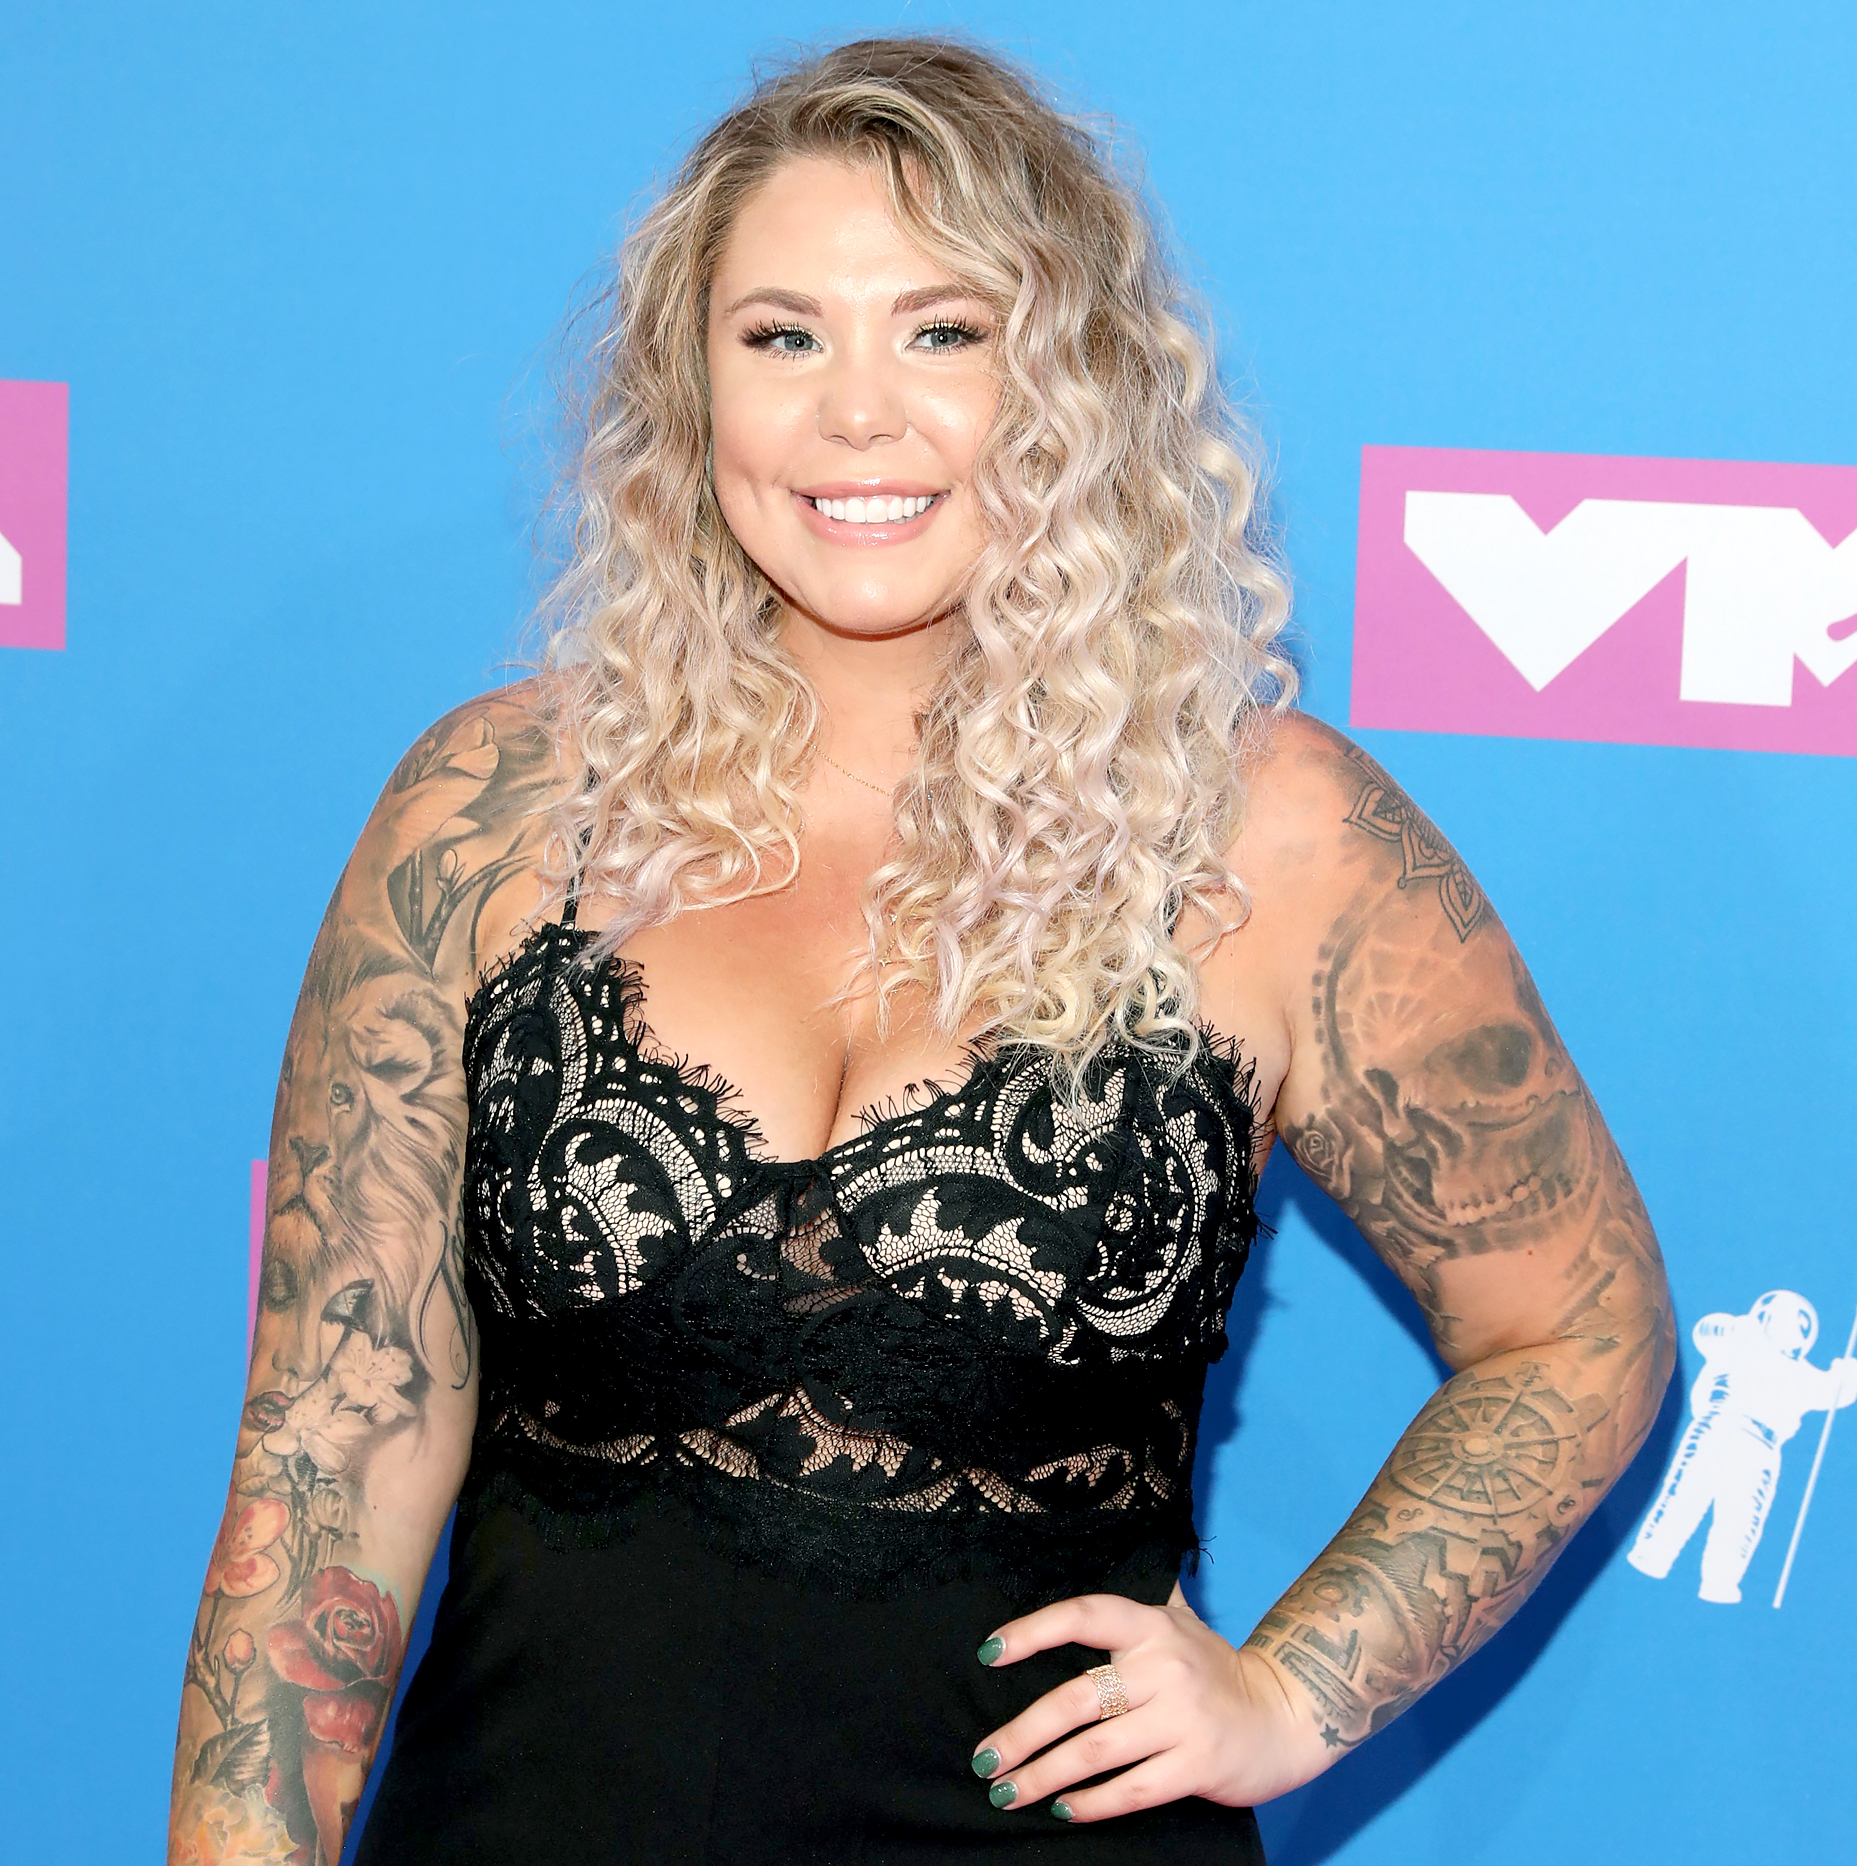 Kailyn-Lowry-Details-Javi-and-Lauren's-Nasty-Fight-2